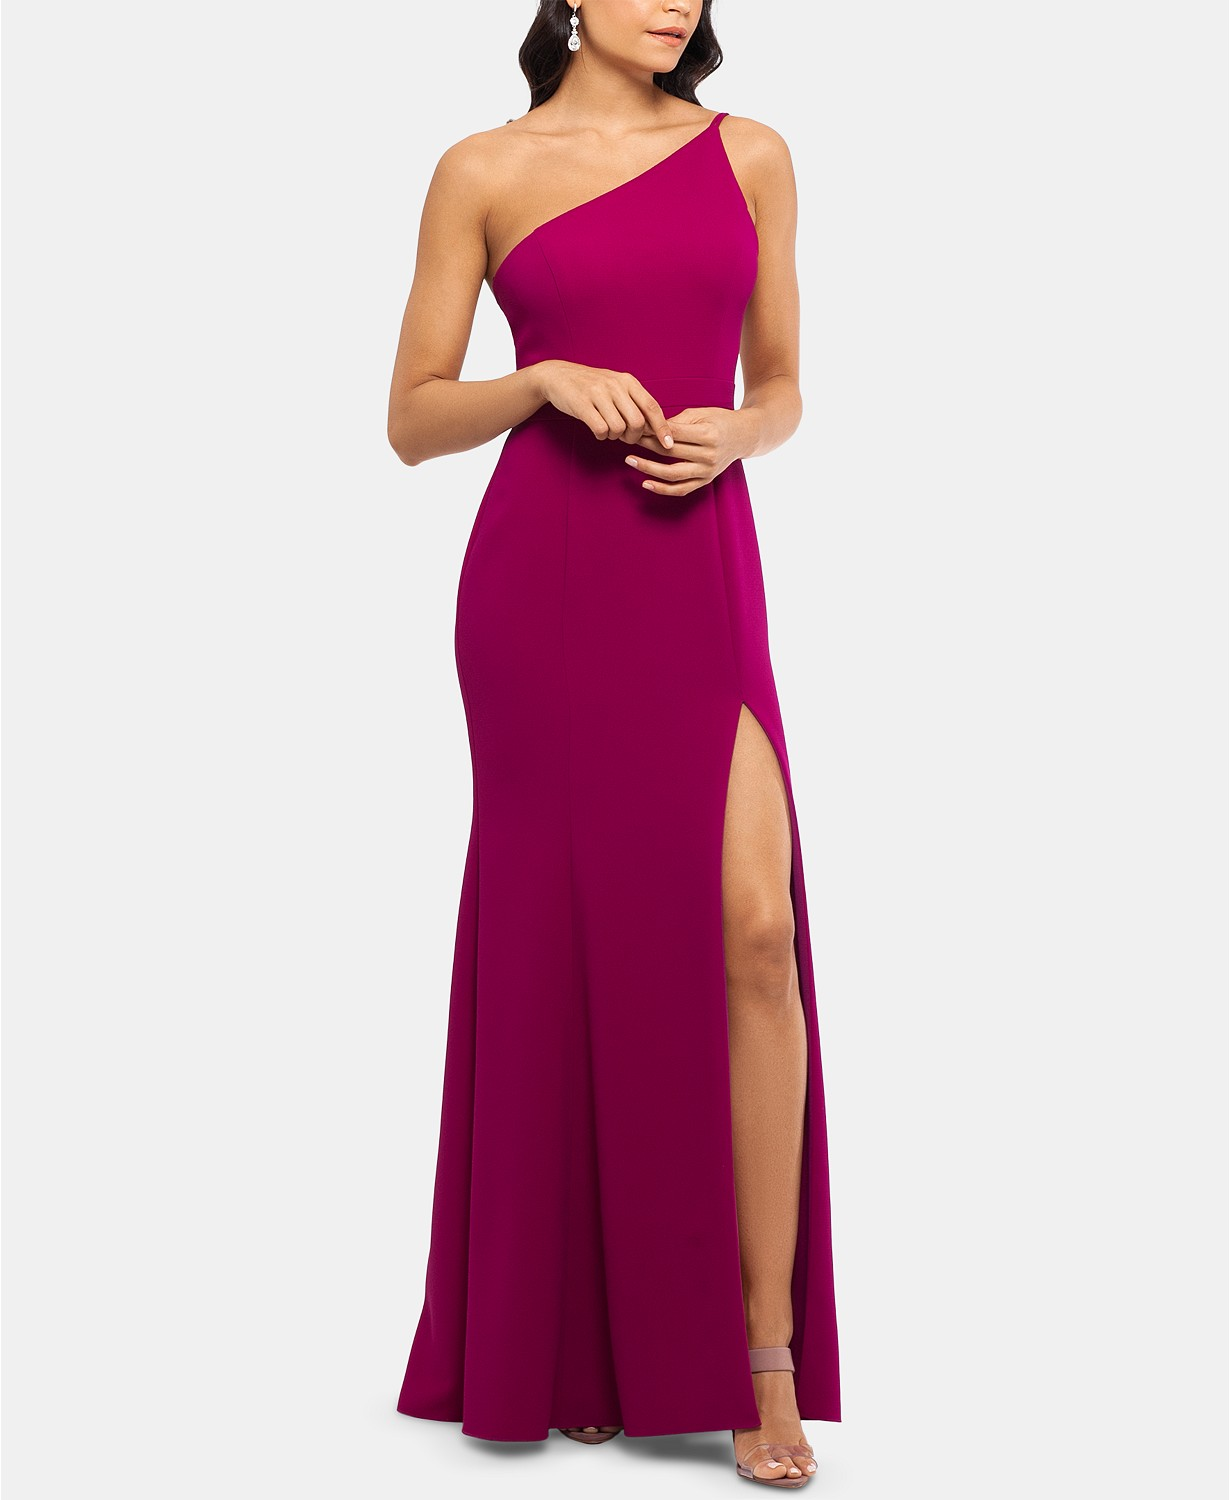 petite evening dress